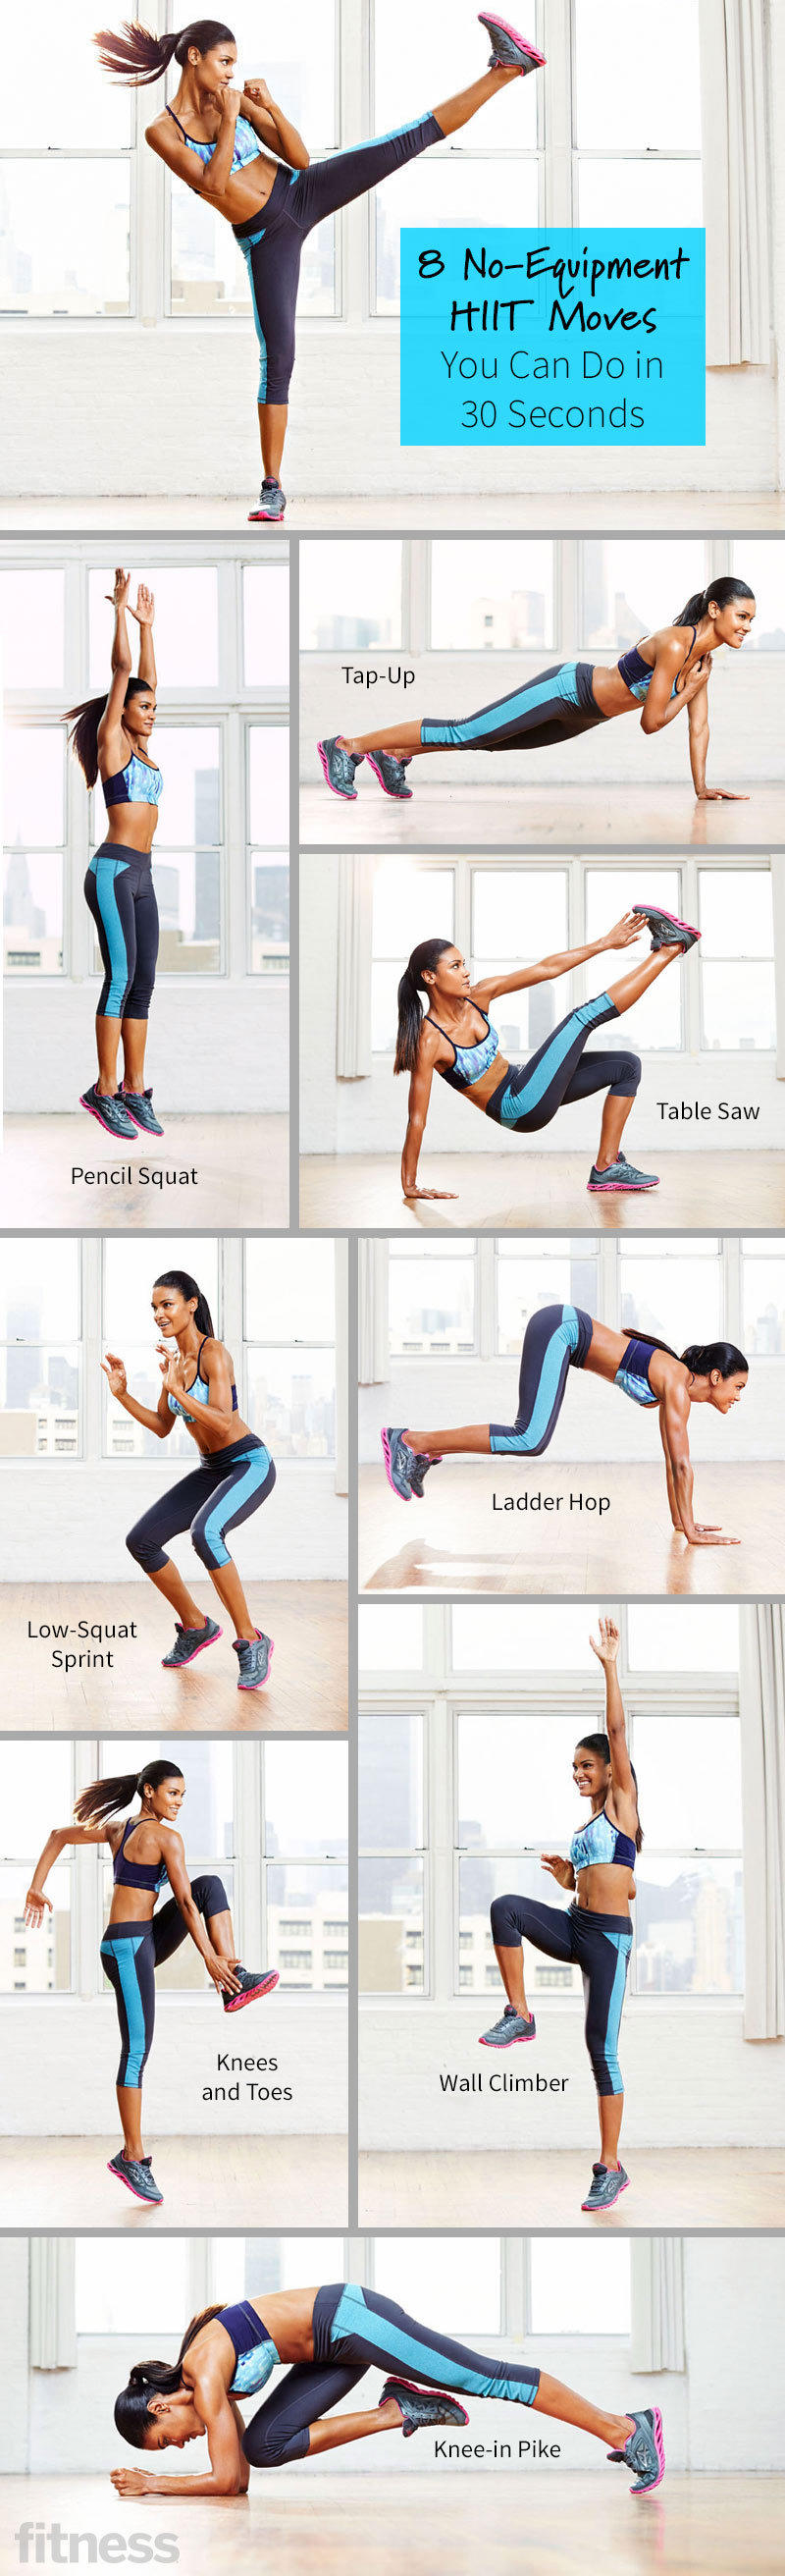 High Intensity Interval Training Workout Fitness Magazine